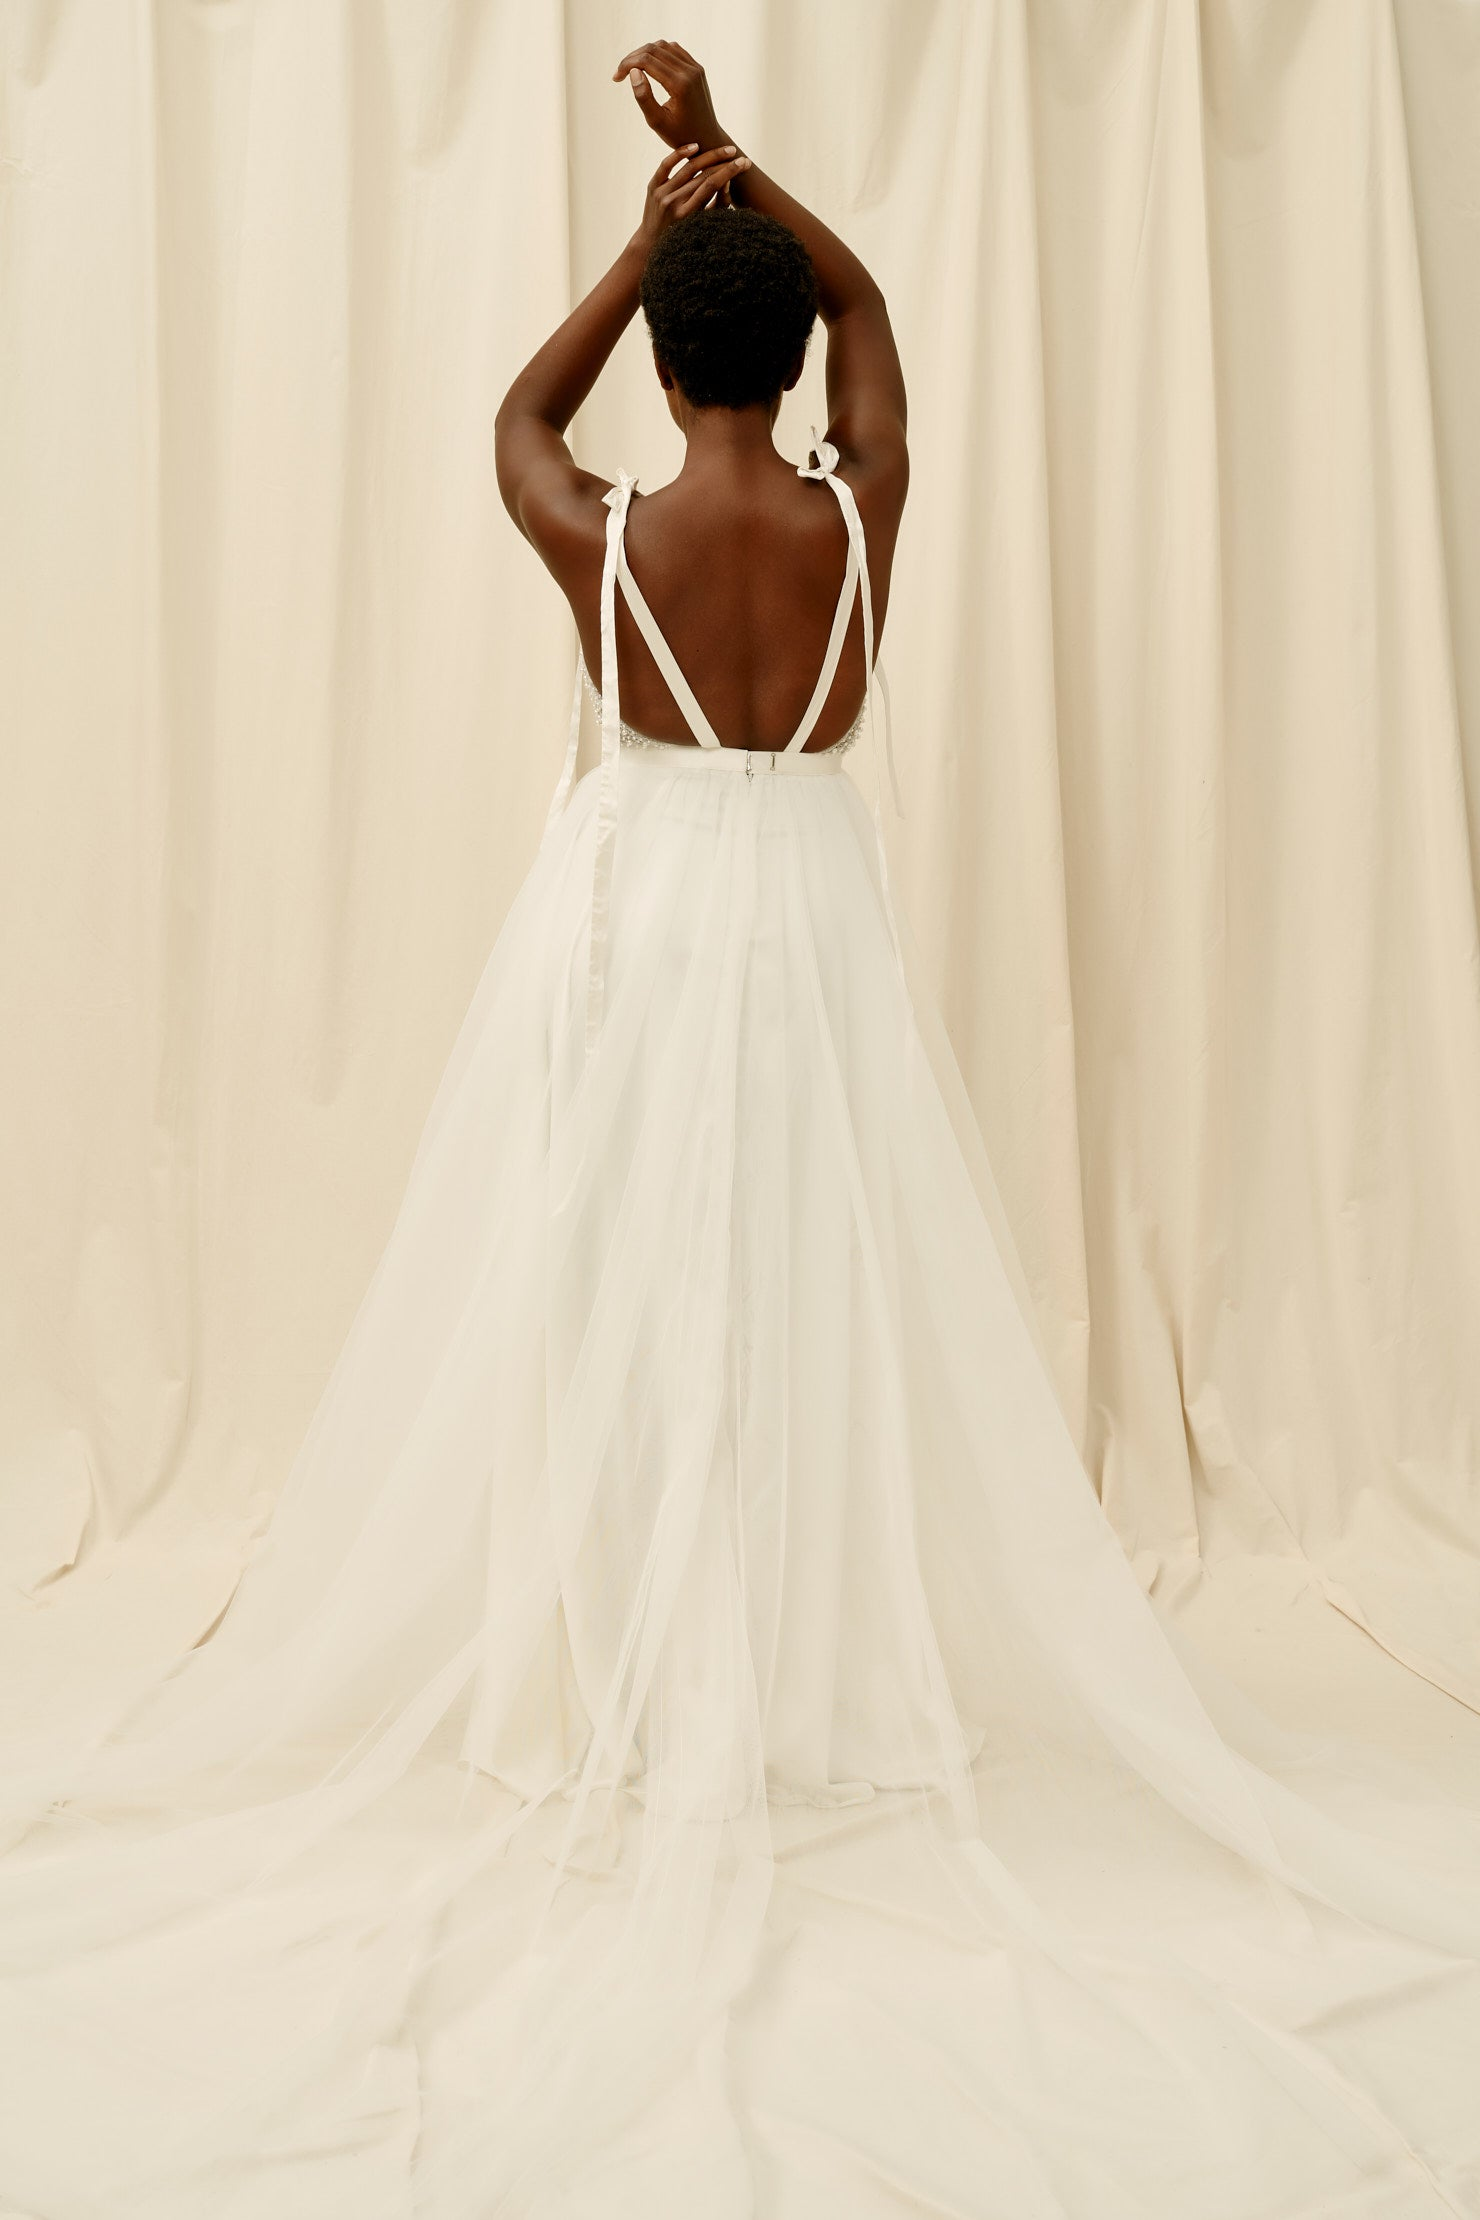 Open backed wedding dress with a soft tulle skirt and a long train